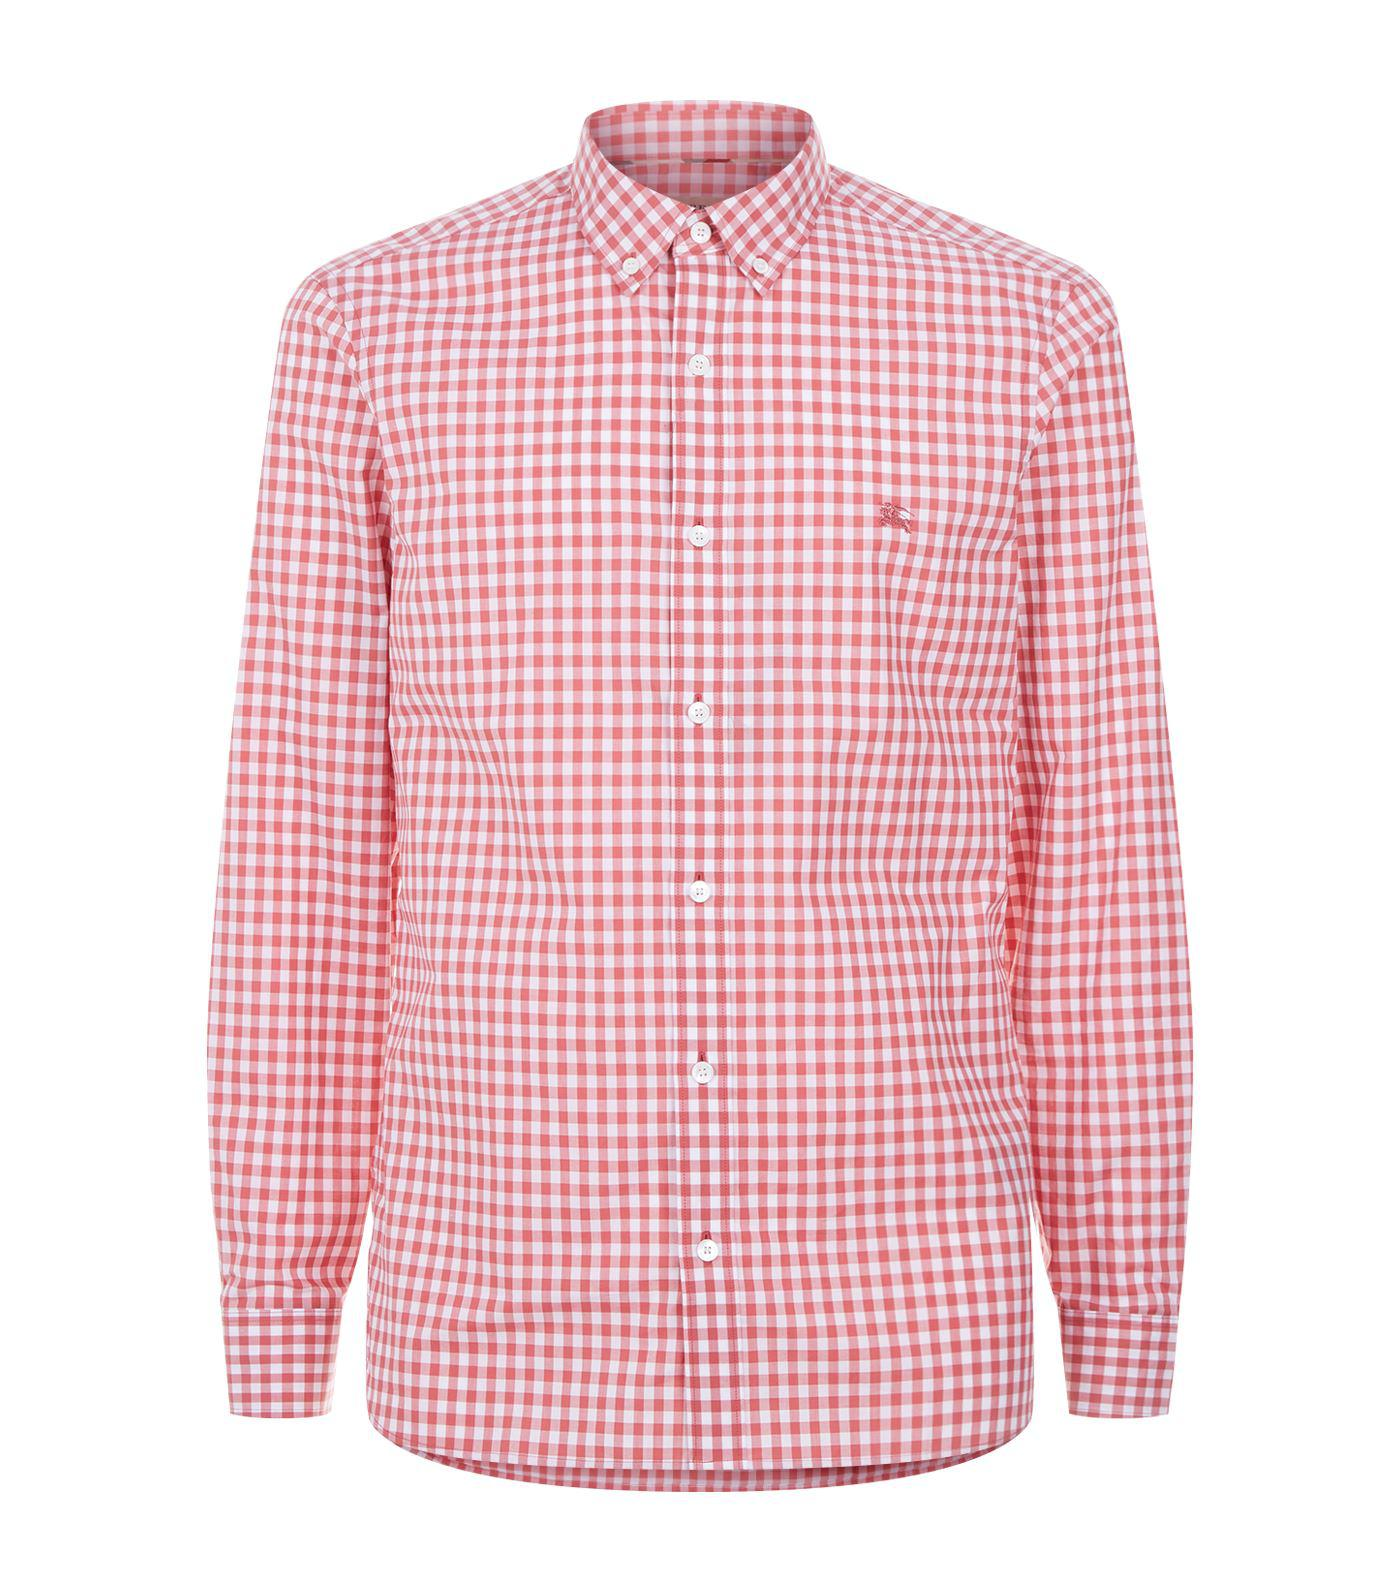 4594ff30 Lyst - Burberry Gingham Button-down Collar Shirt in Pink for Men